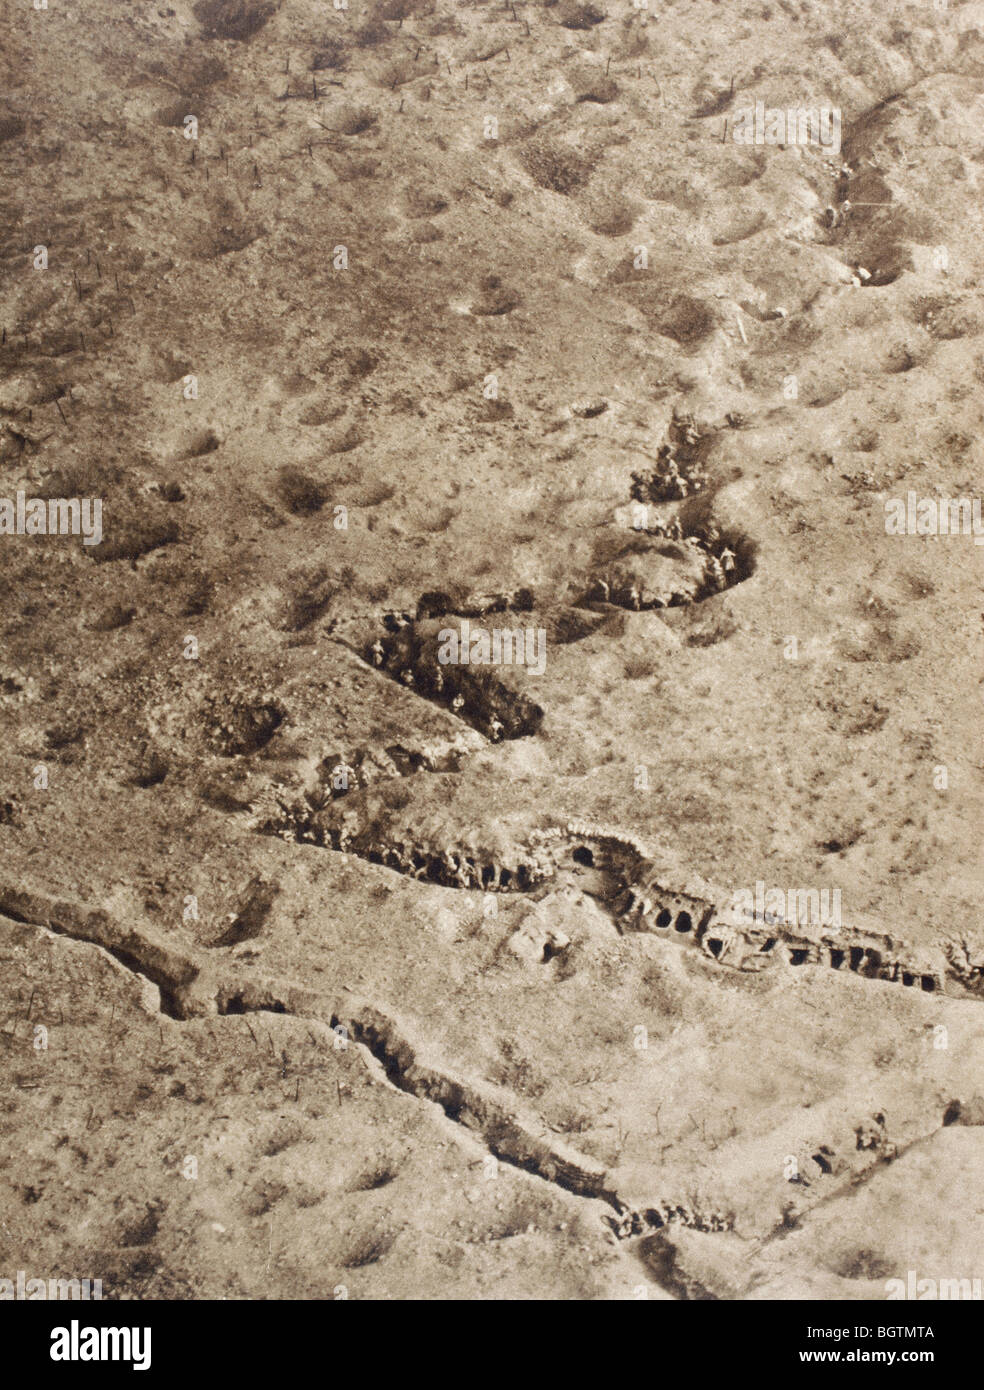 Aerial view of trenches on the Somme battlefield during the First World War. - Stock Image